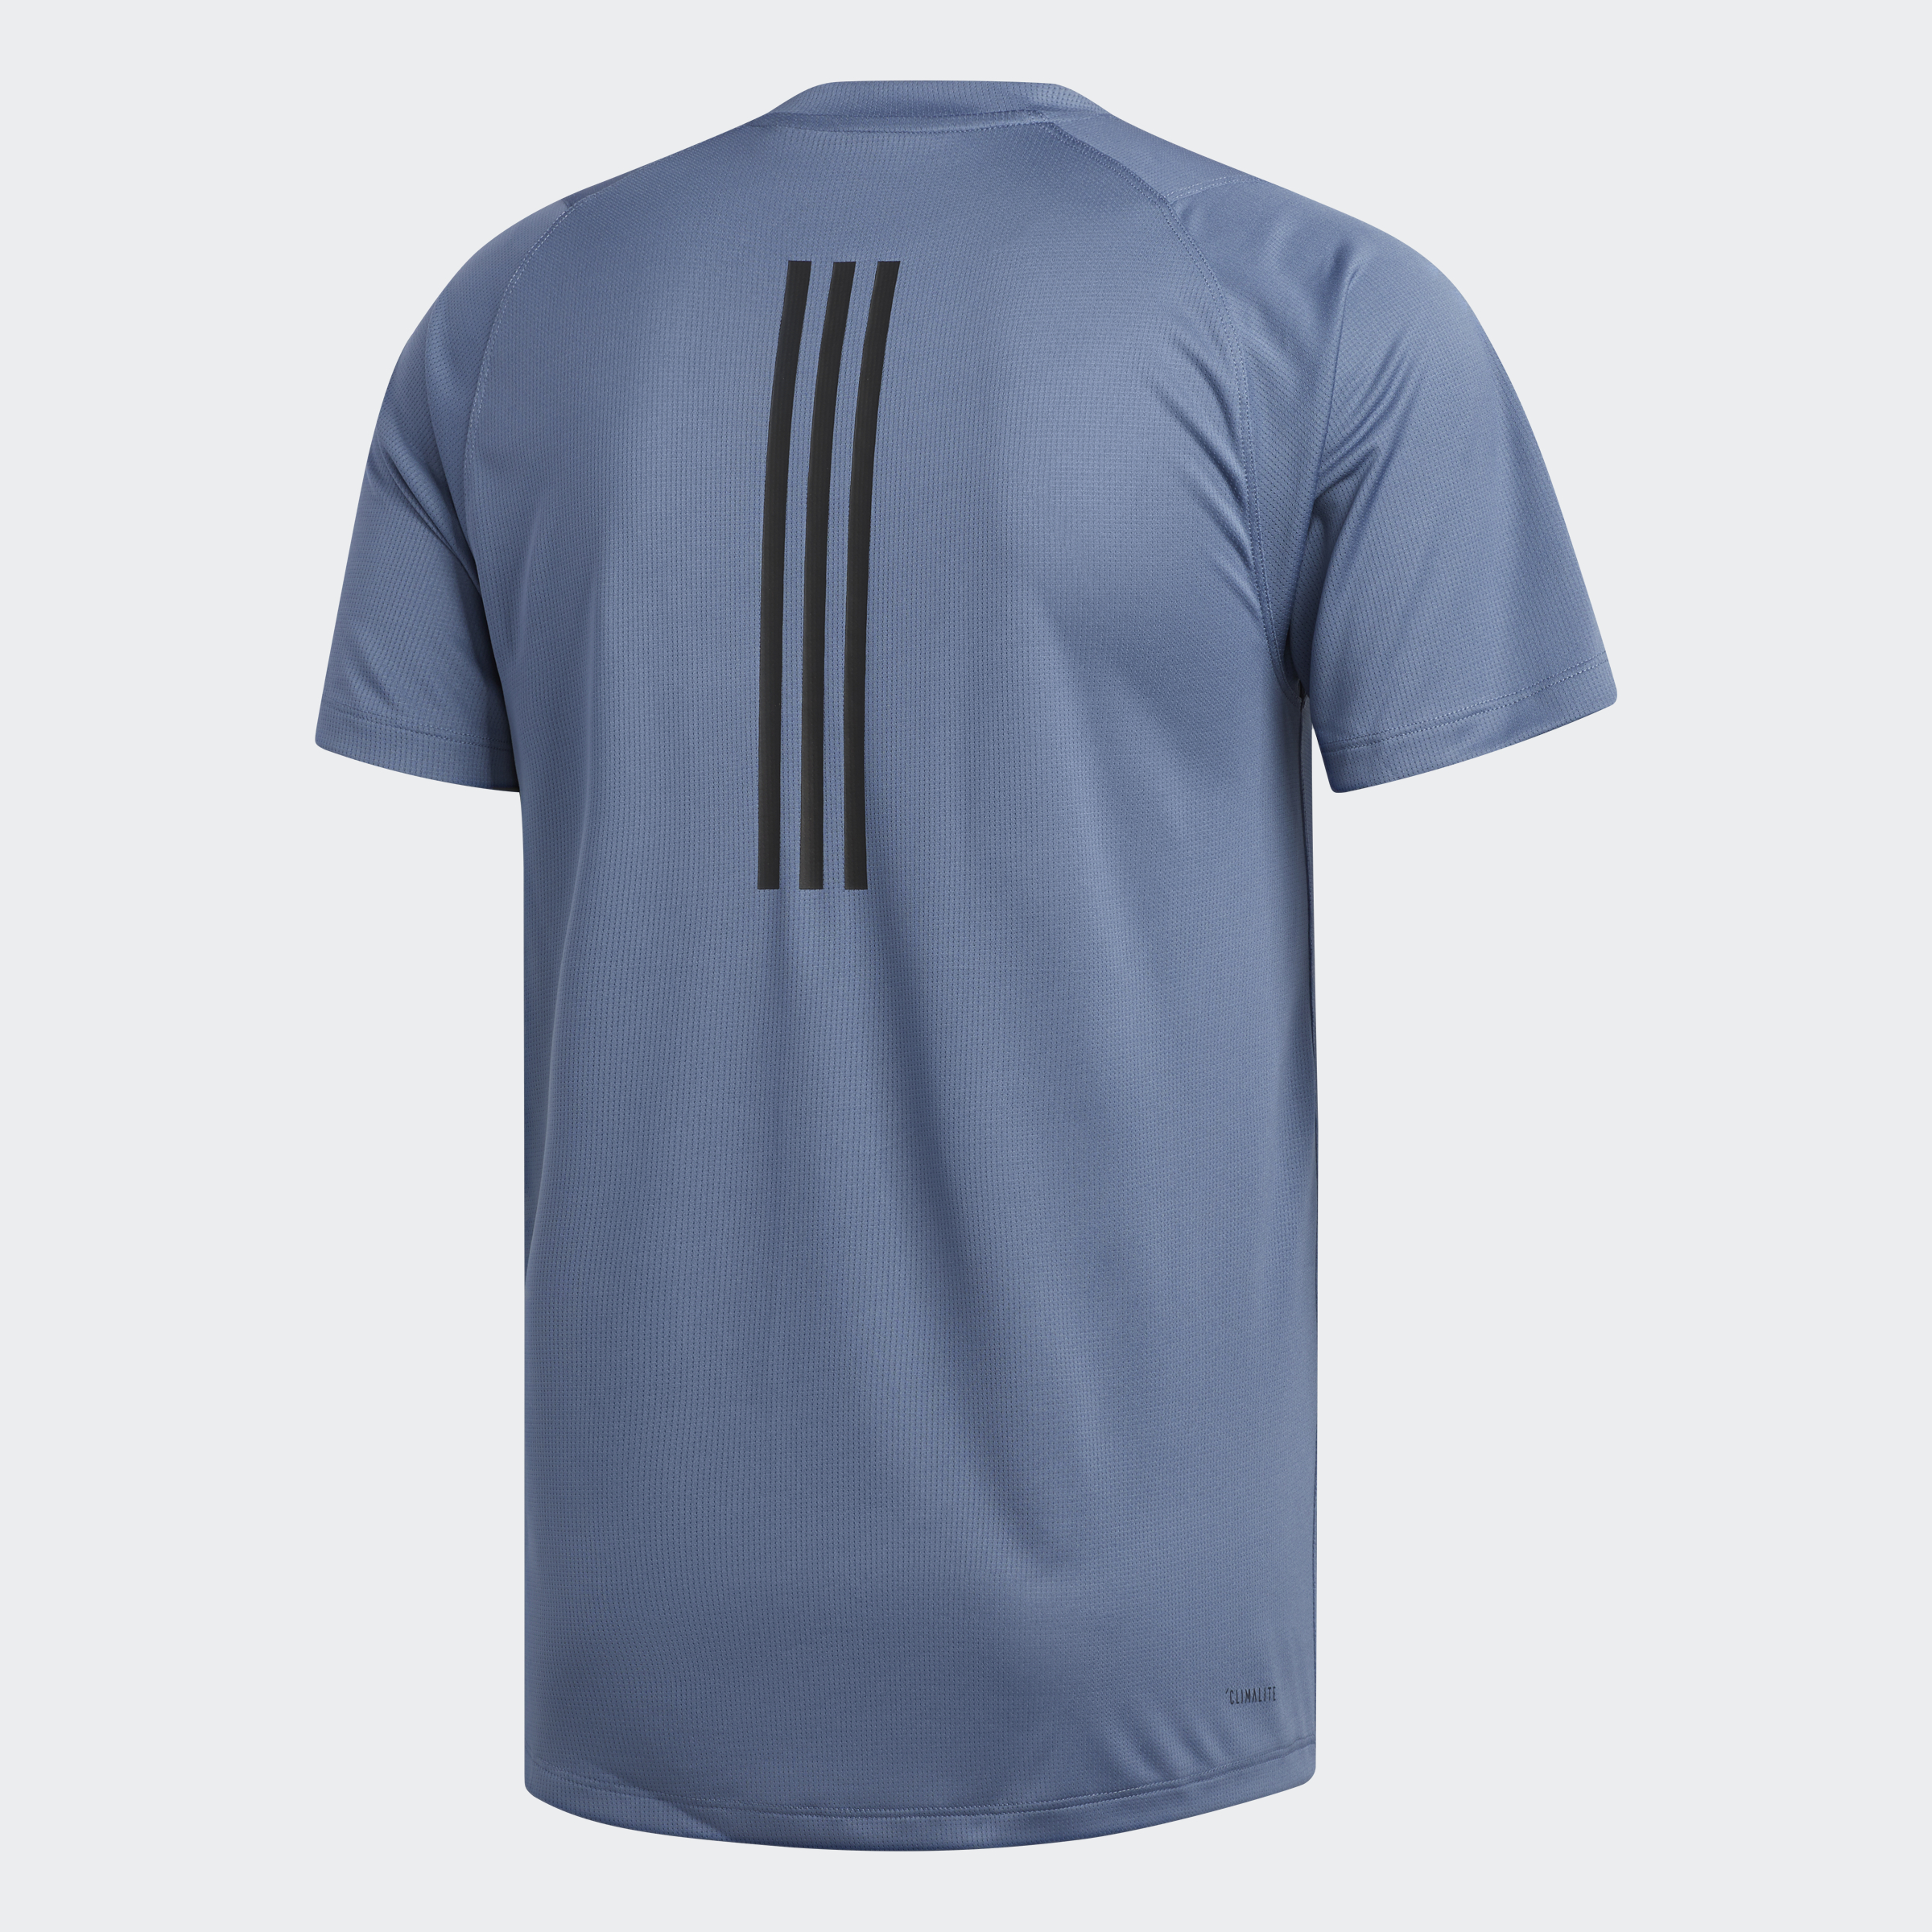 adidas-FreeLift-Sport-Fitted-3-Stripes-Tee-Men-039-s-Shirts thumbnail 39